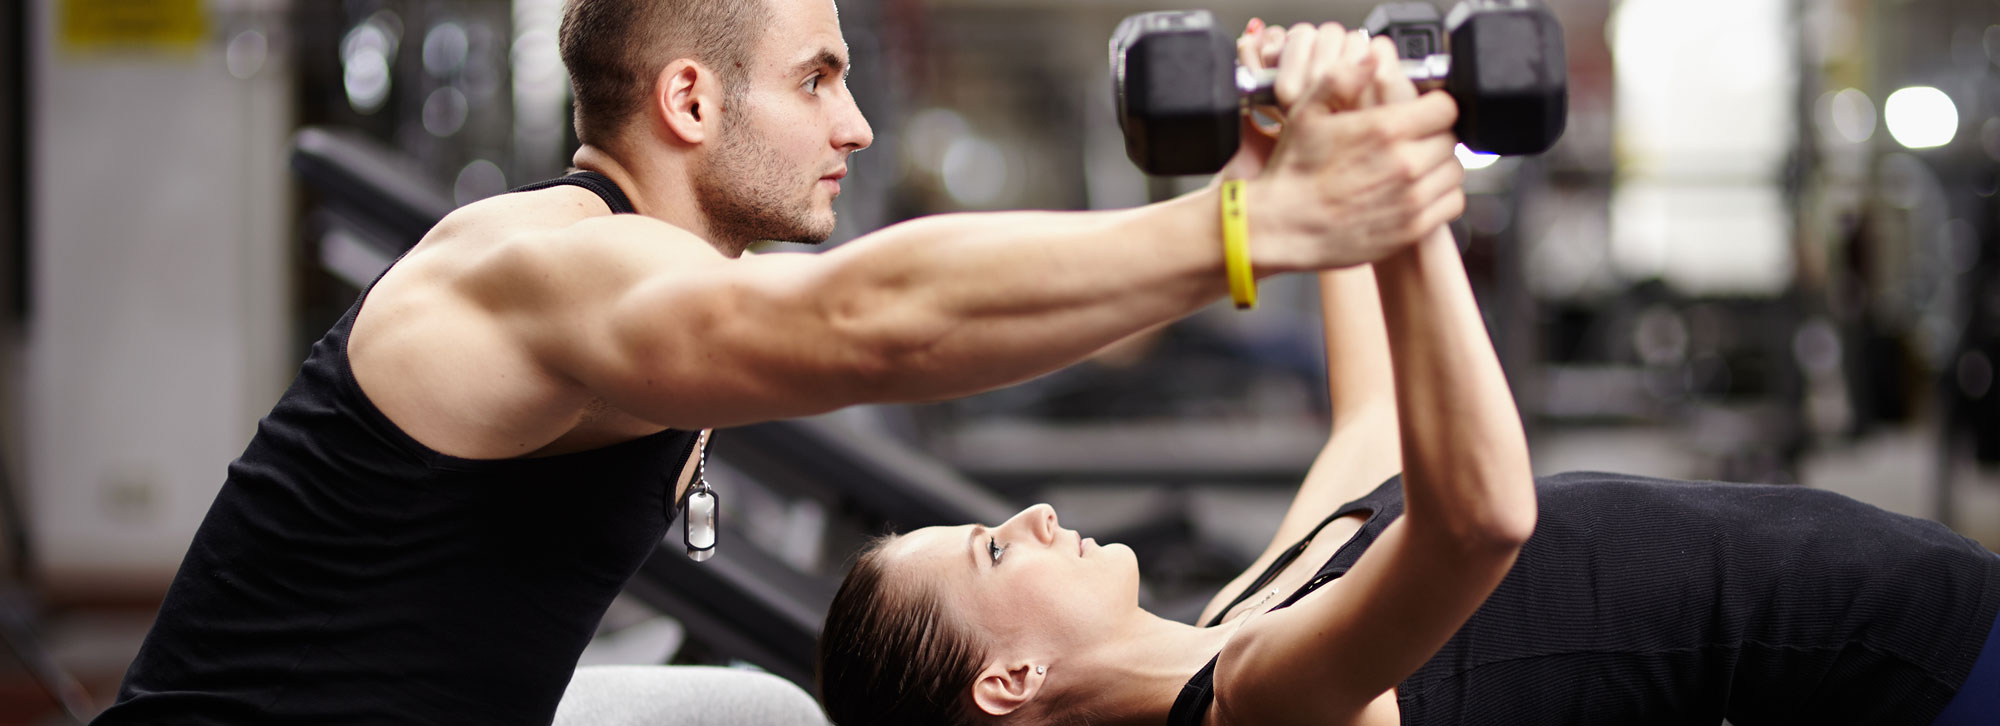 Woman Lifting Weights, Aided by a Man